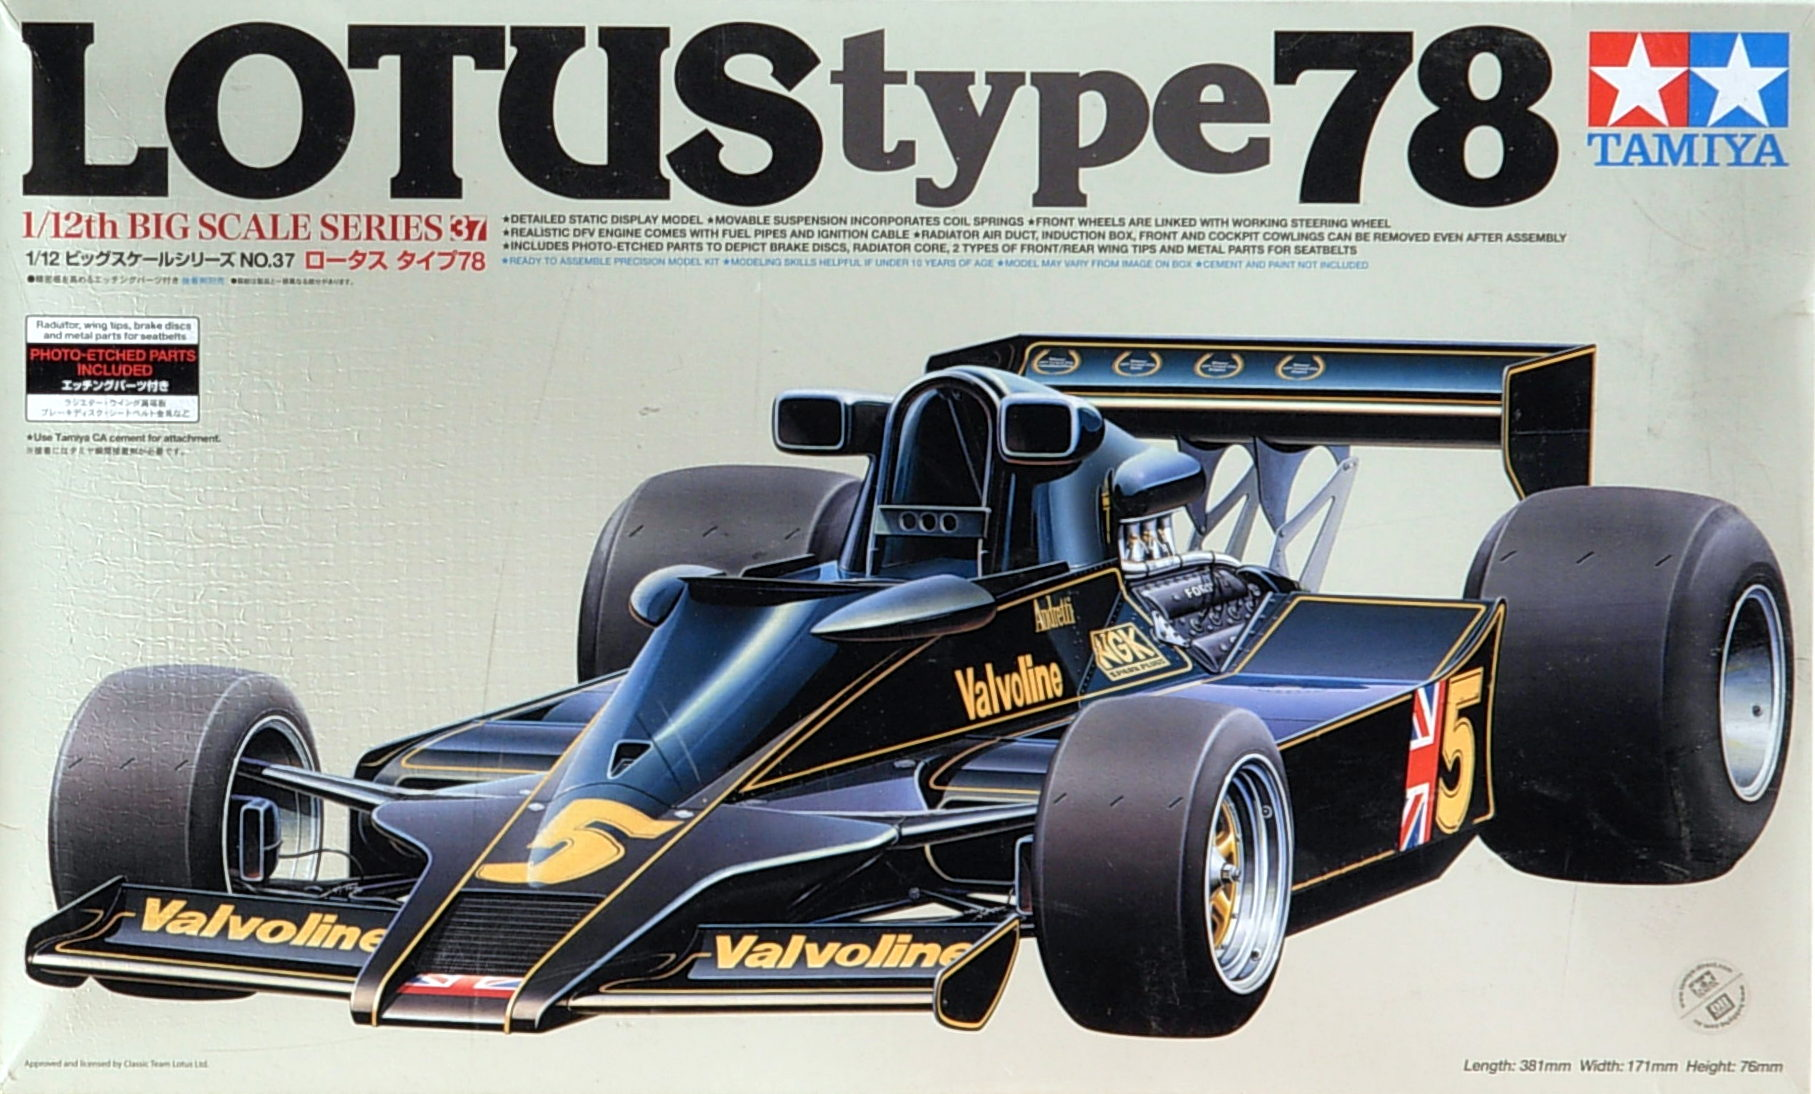 Lotus Mk.III JPS 78 with Etch parts